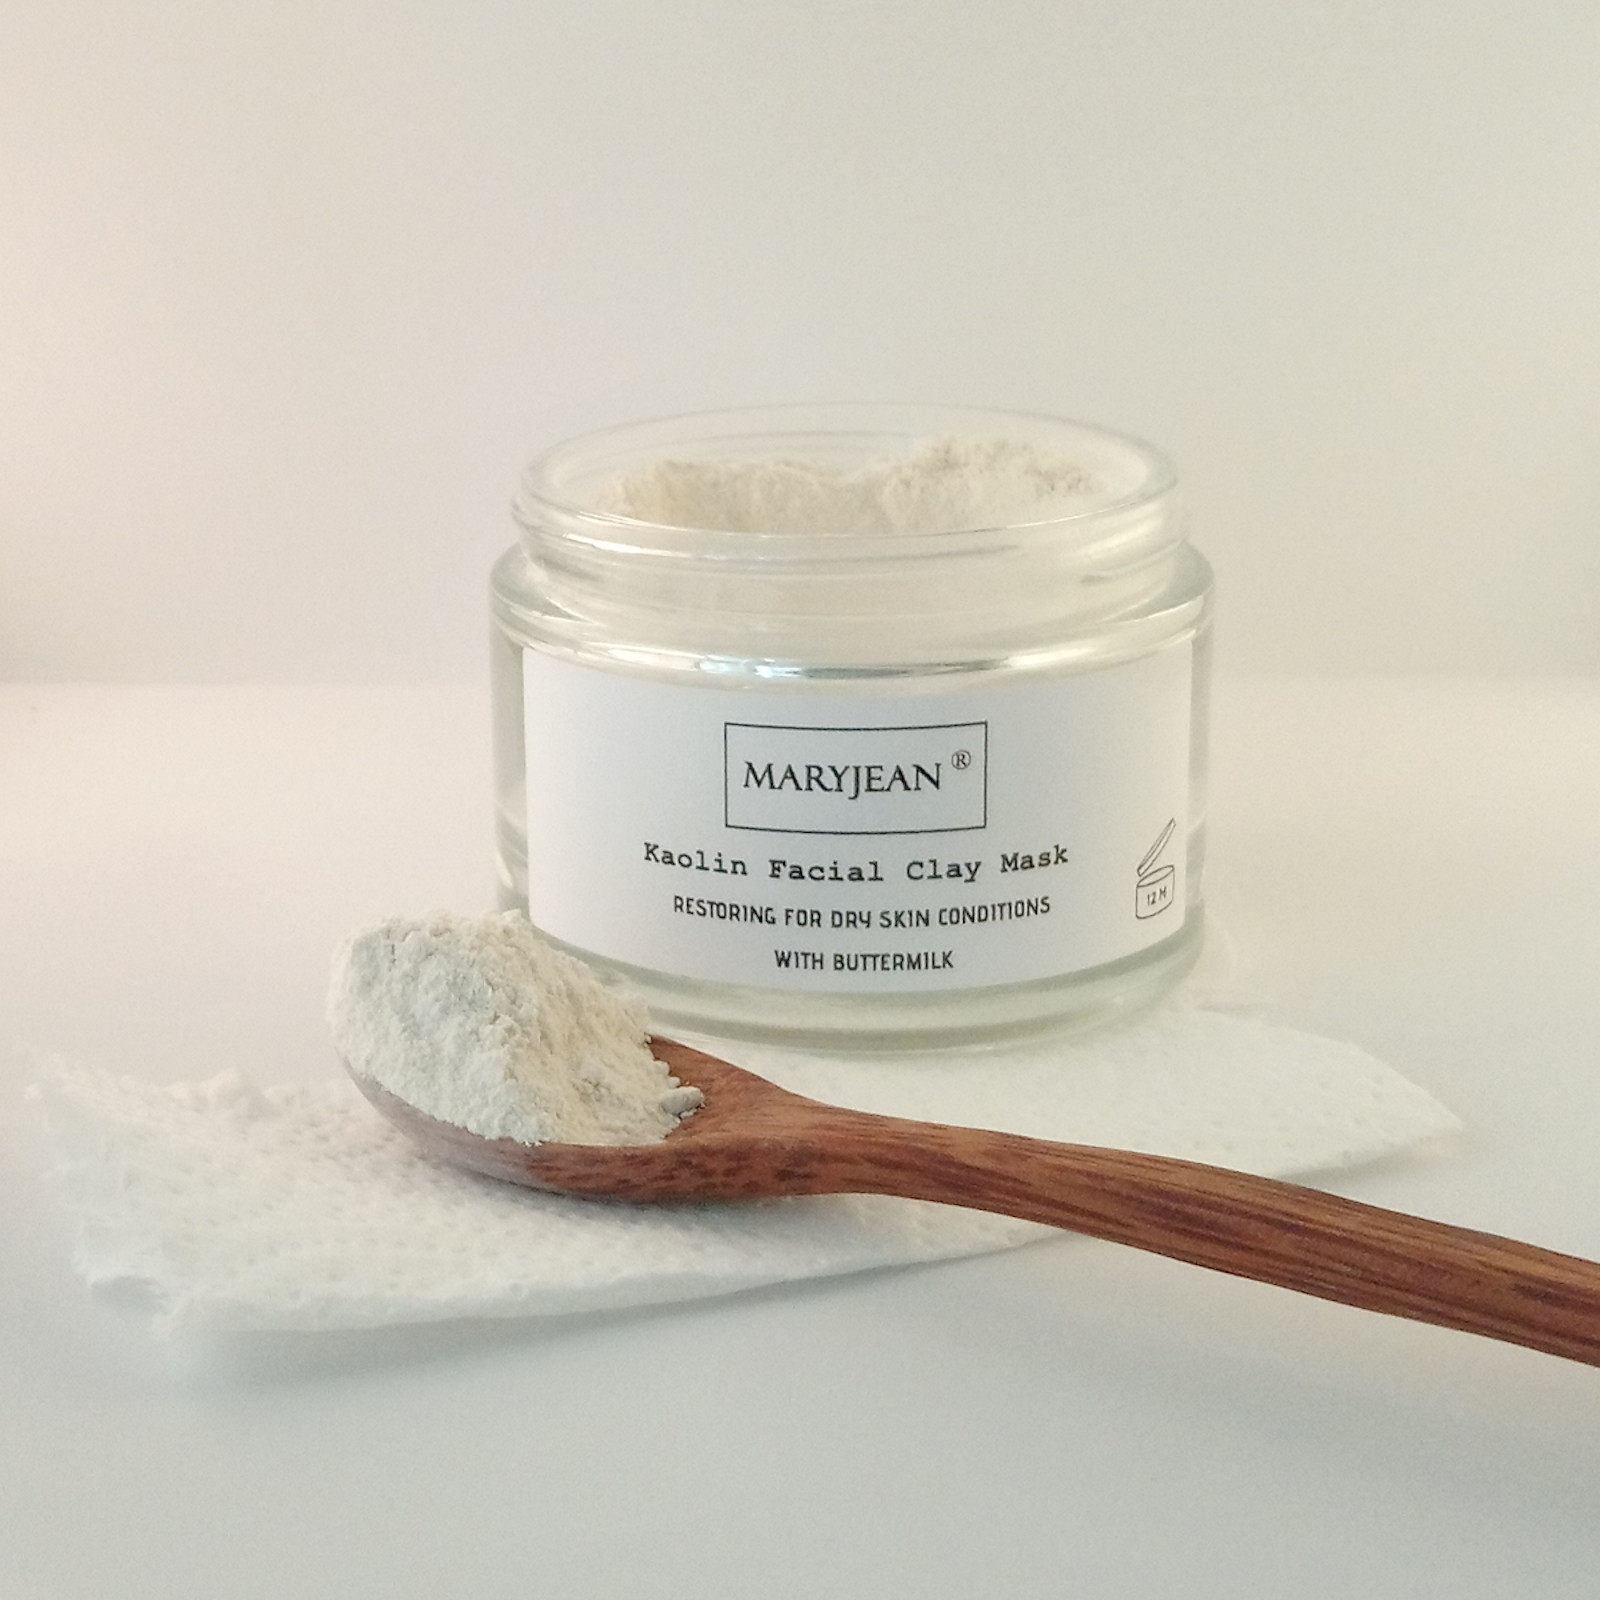 Increase your blood circulation when exfoliating your facial skin for a more radiant glowing skin complexion, use the Kaolin mask with buttermilk from Mary Jean